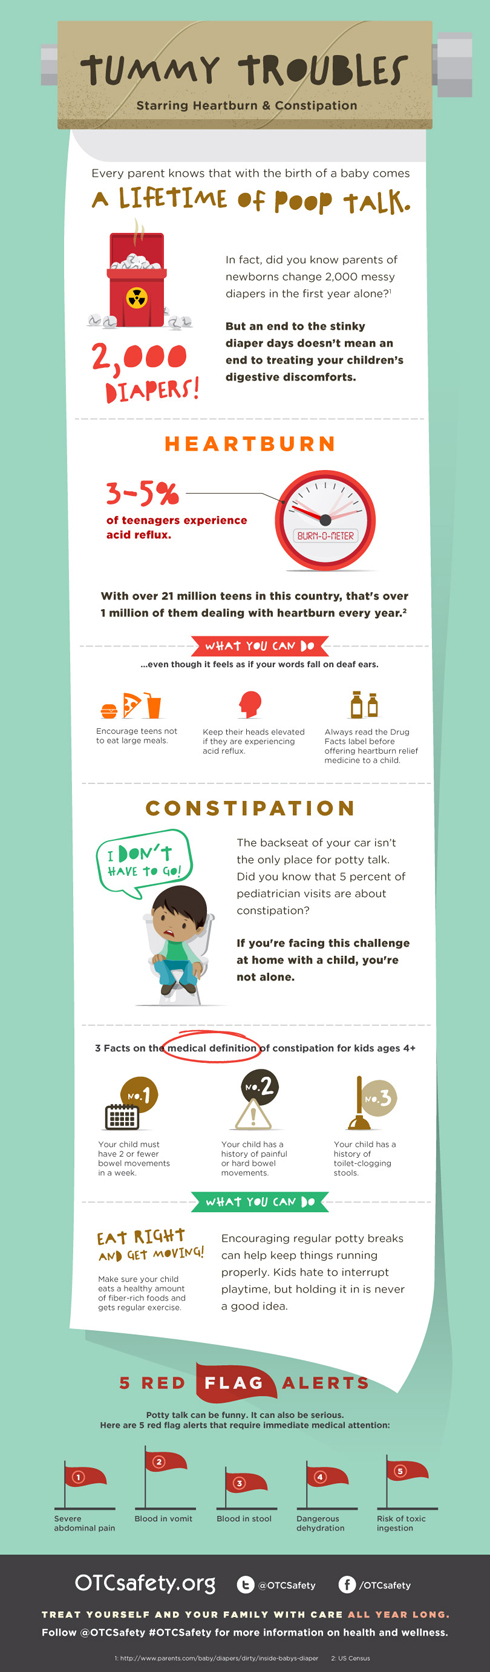 Facts About & Tips for Dealing with Children's Tummy Troubles